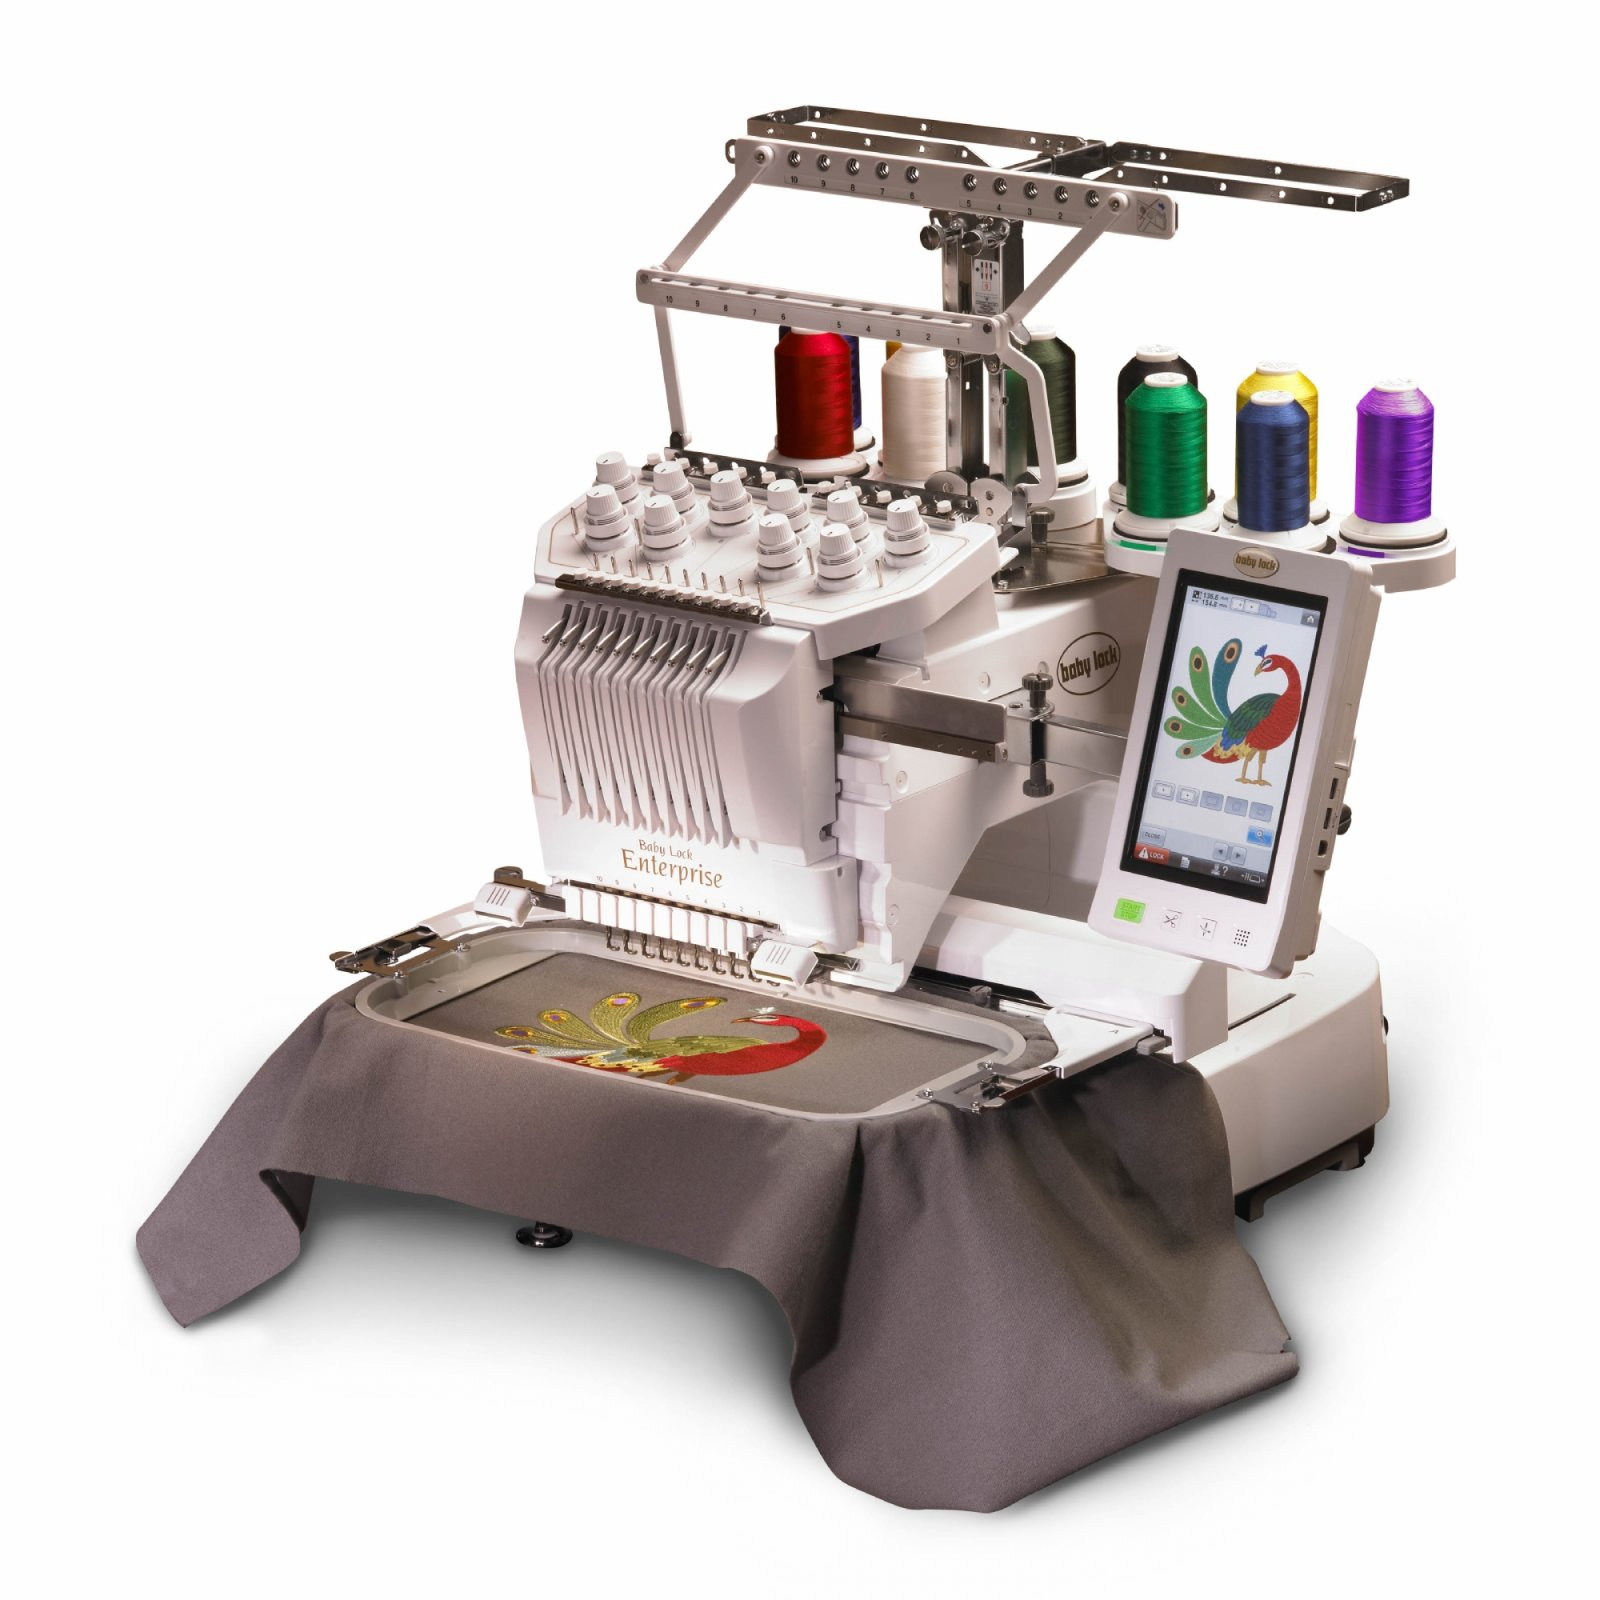 MACHINE-BABYLOCK-ENTERPRISE 10 NEEDLE EMBROIDERY MACHINEW/ EMBROIDERY TABLE